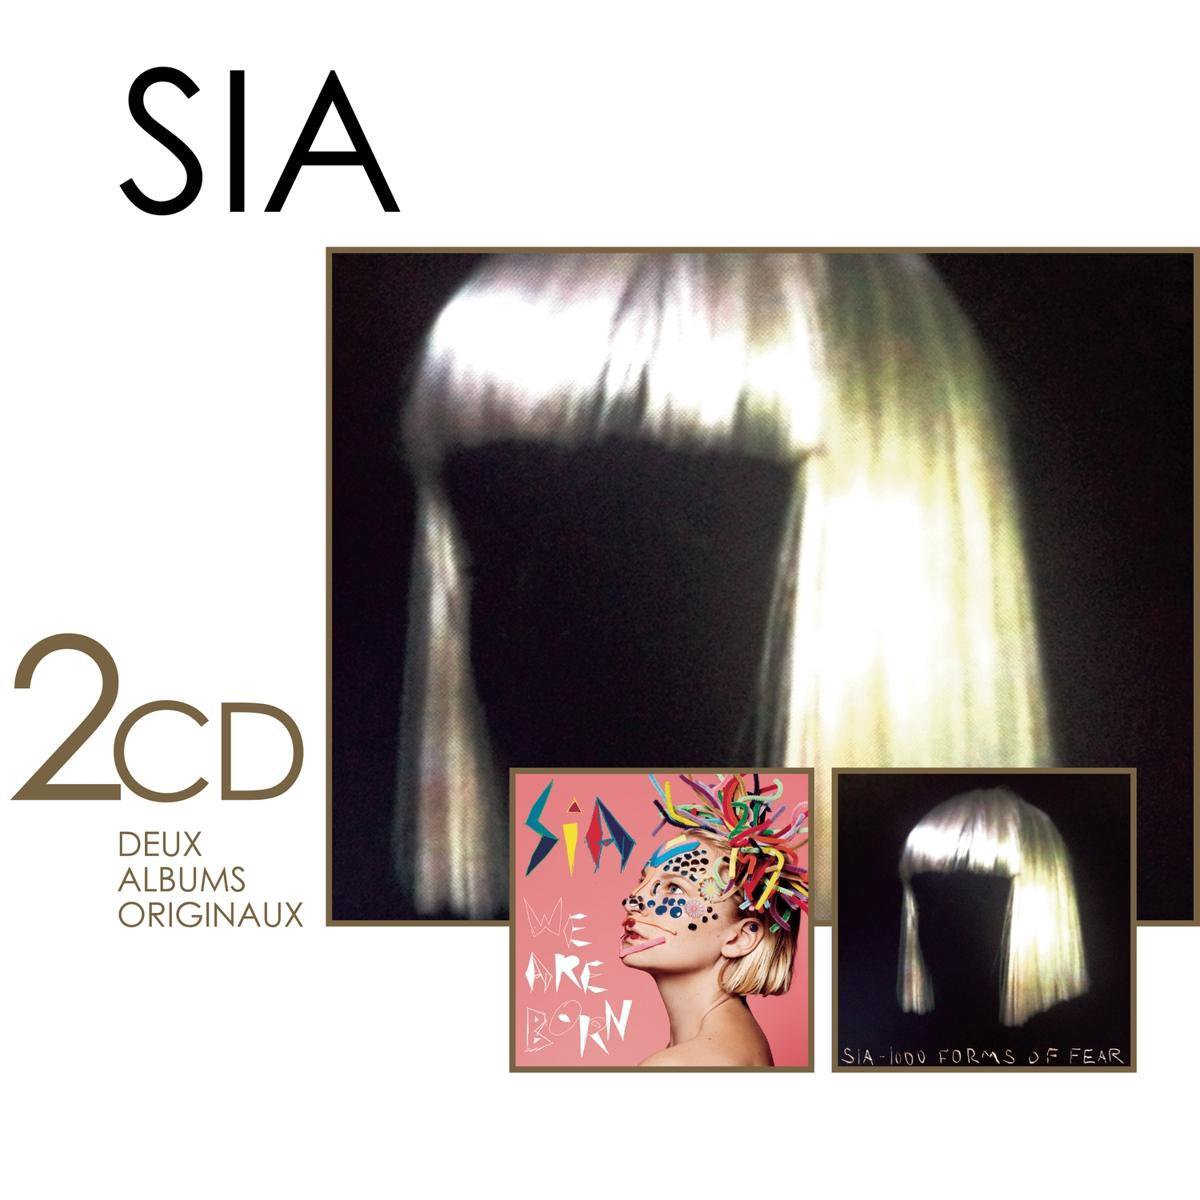 1000 Forms Of Fear / We Are Bo - Sia